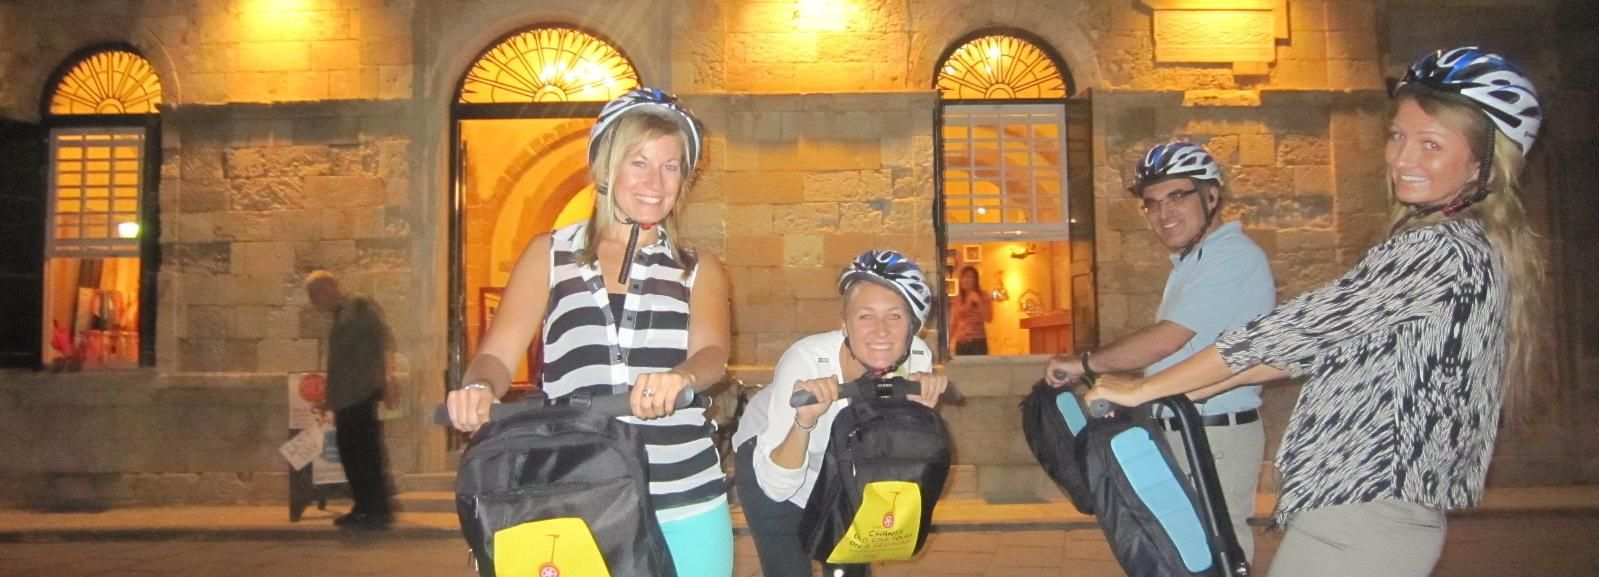 Chania, Crete: 90-Minute Segway Night Tour